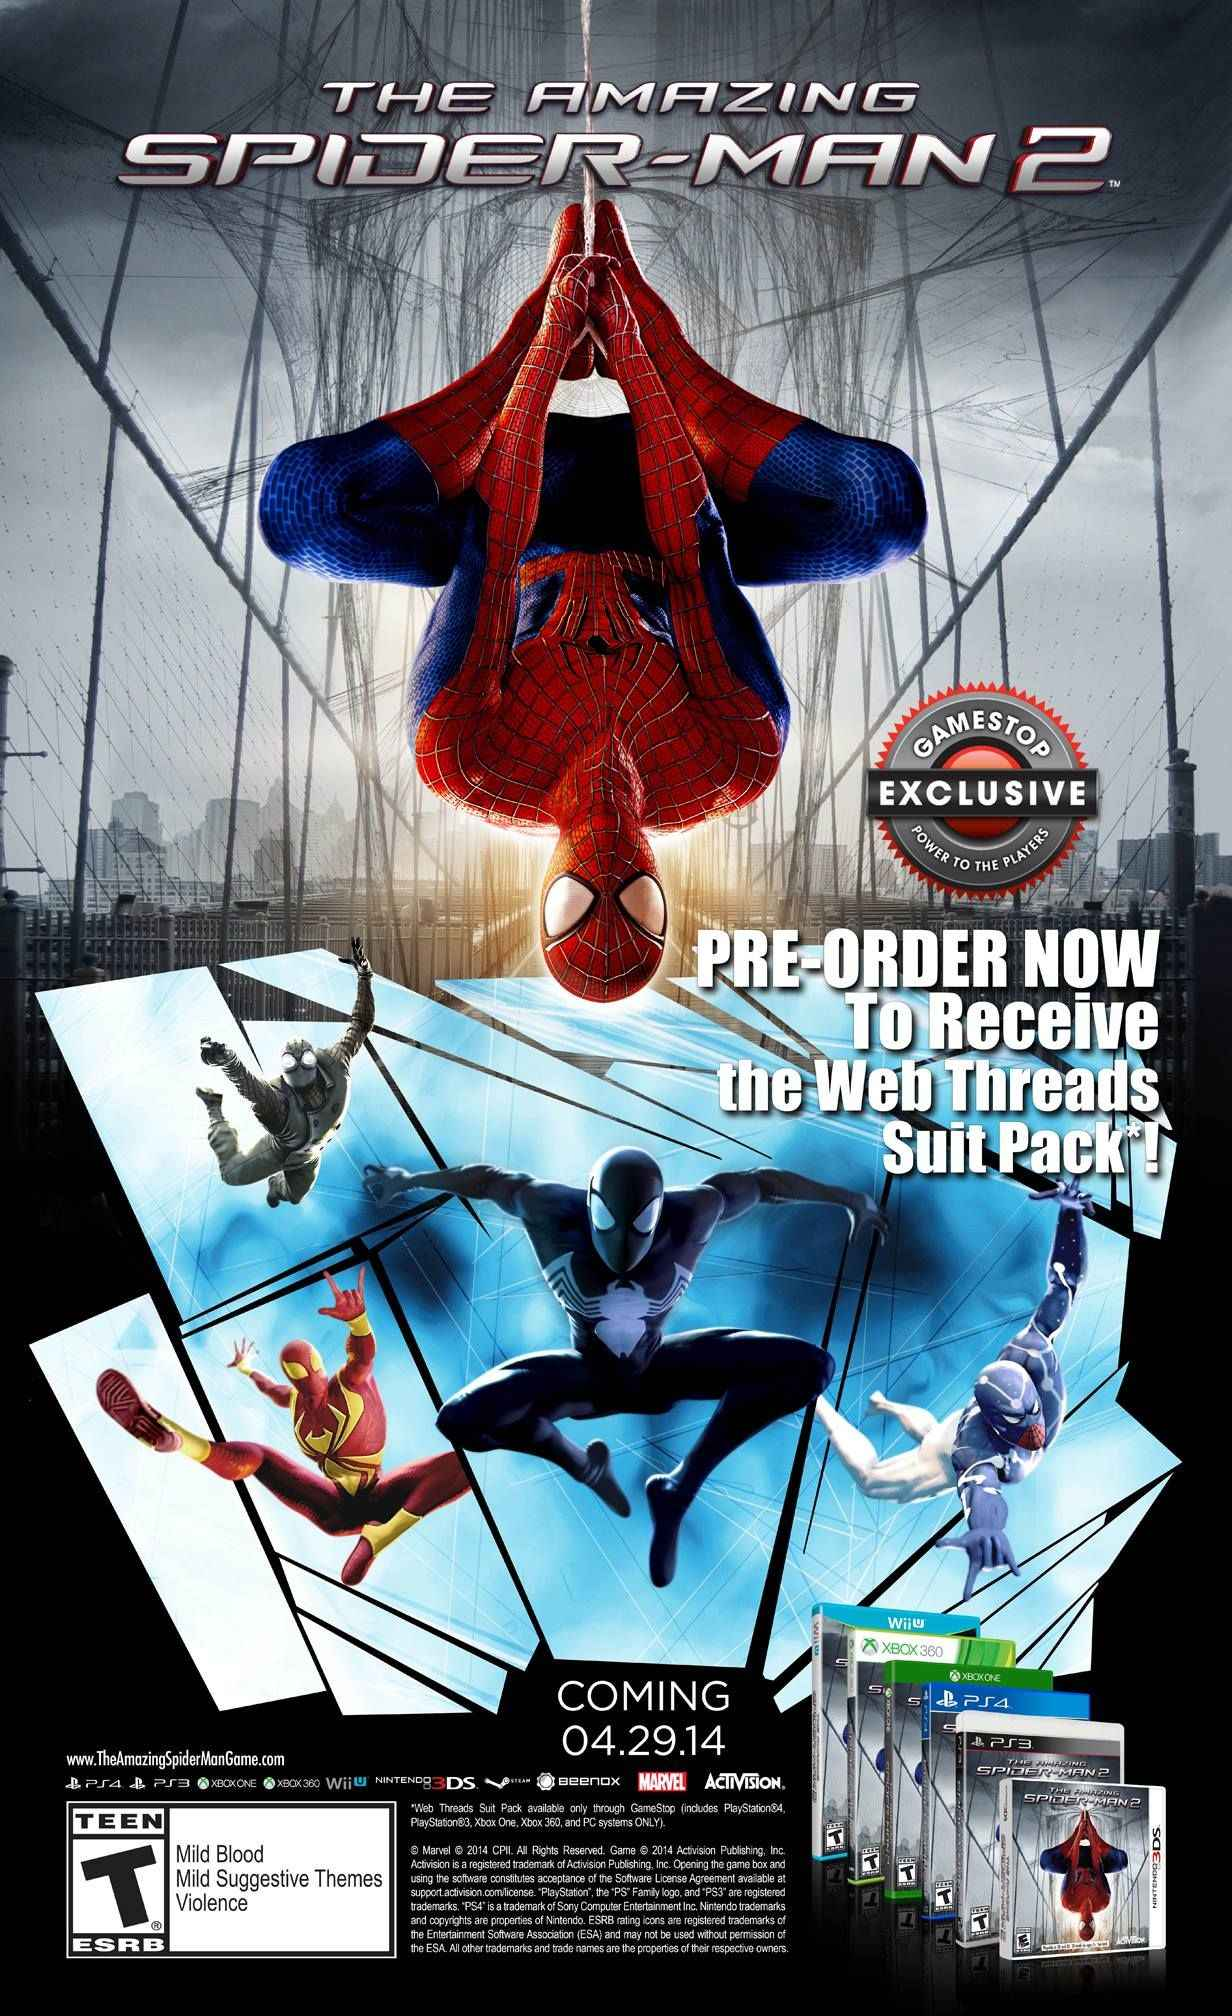 The Amazing Spider-Man 2 Pre-Order Bonuses And Release Date Revealed